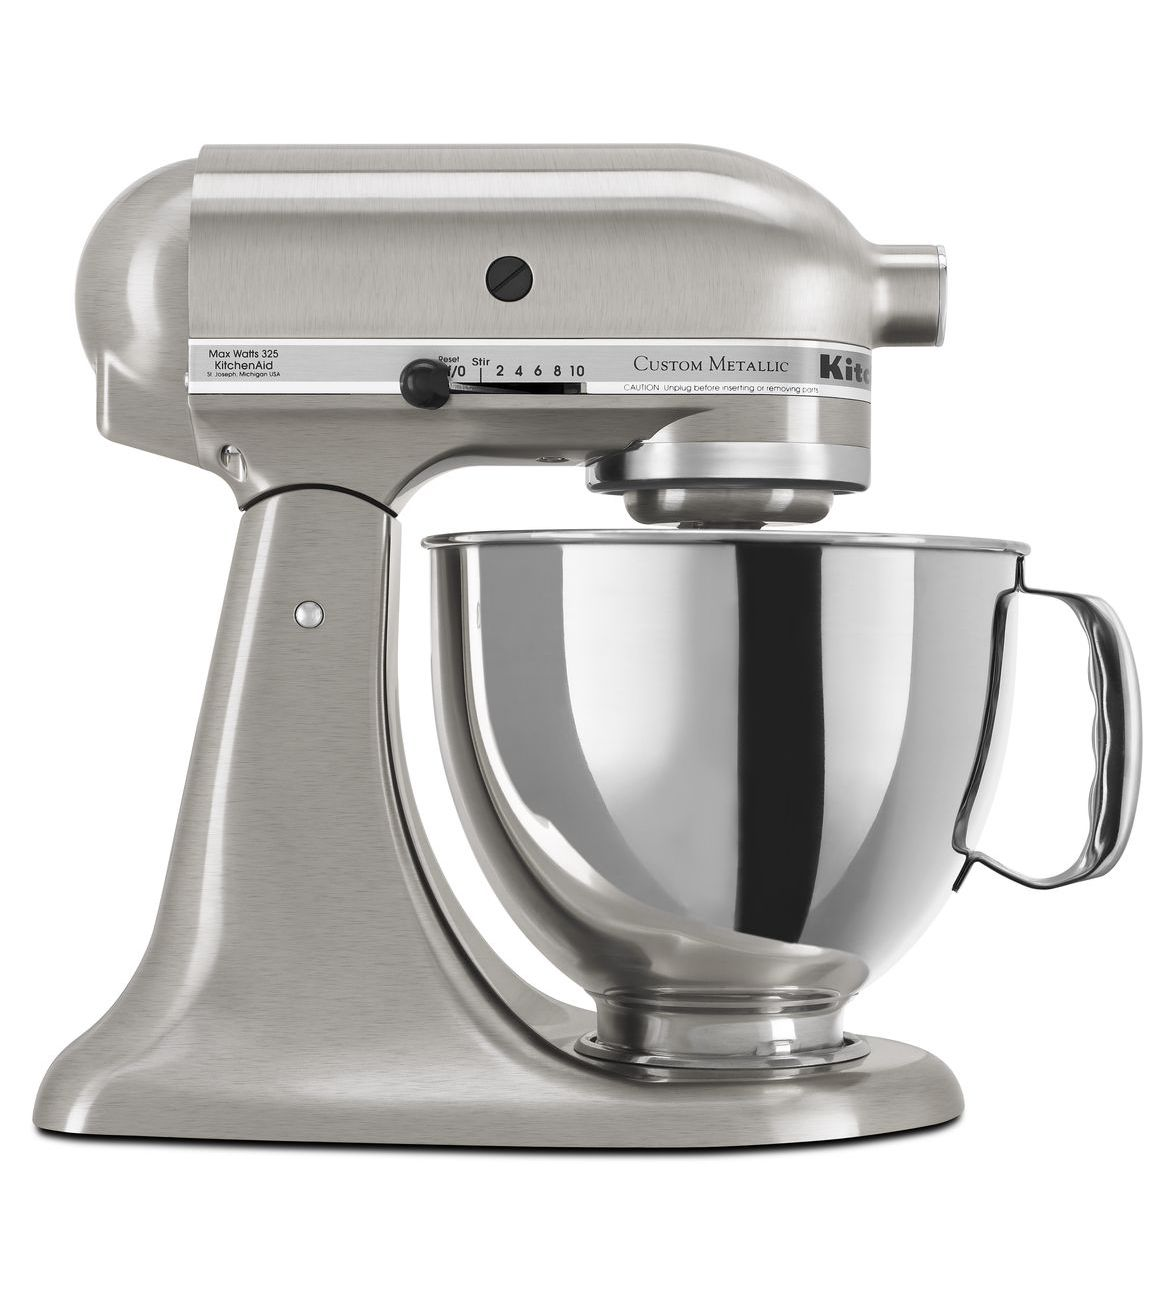 KitchenAid® Refurbished Artisan® Series 5 Quart Tilt-Head Stand Mixer, RRK150 Brushed Nickel